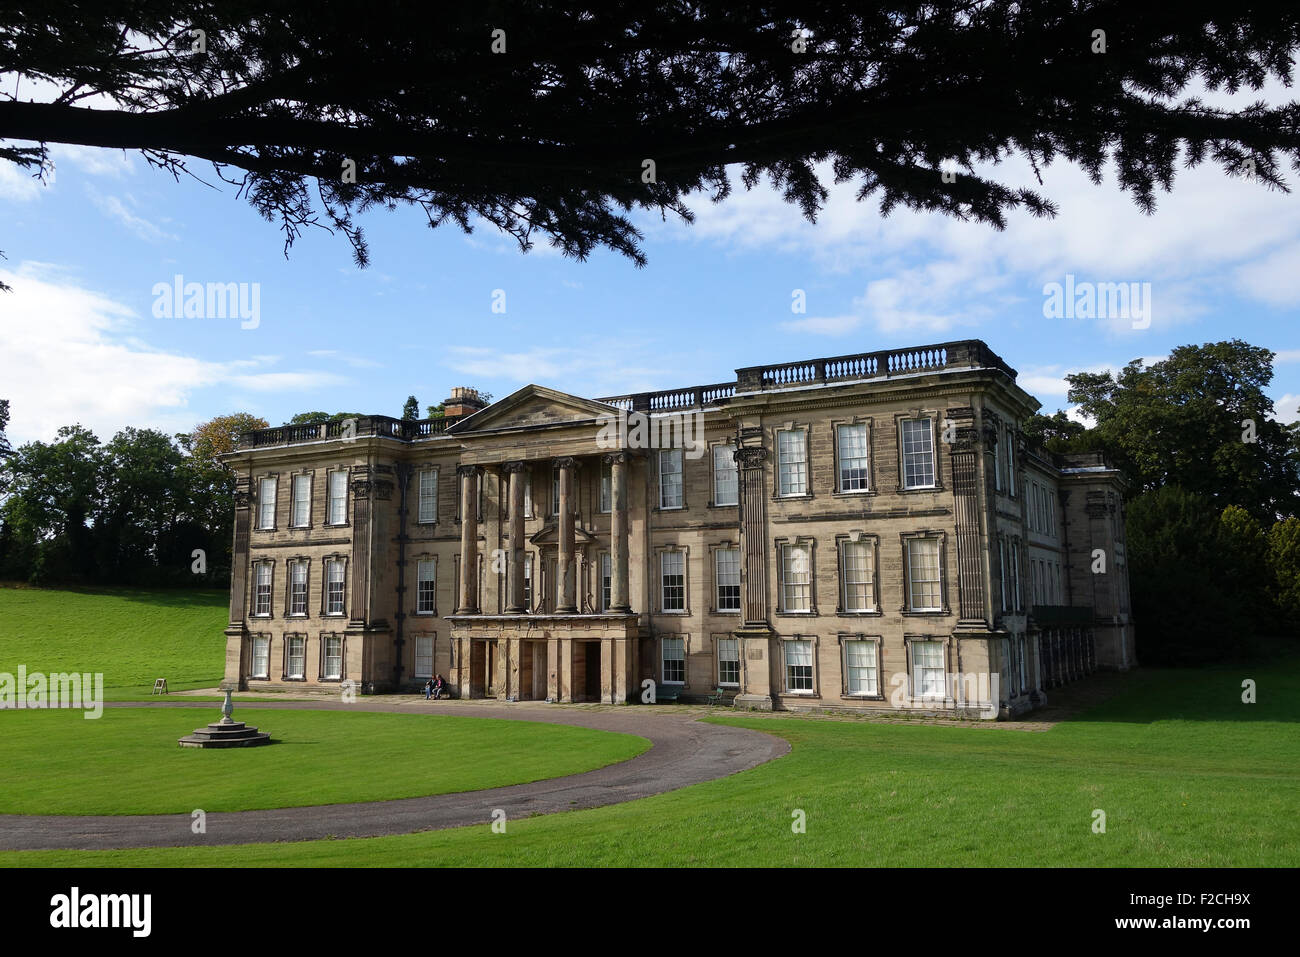 Calke abbey derbyshire country house stately home uk stock for Country house online